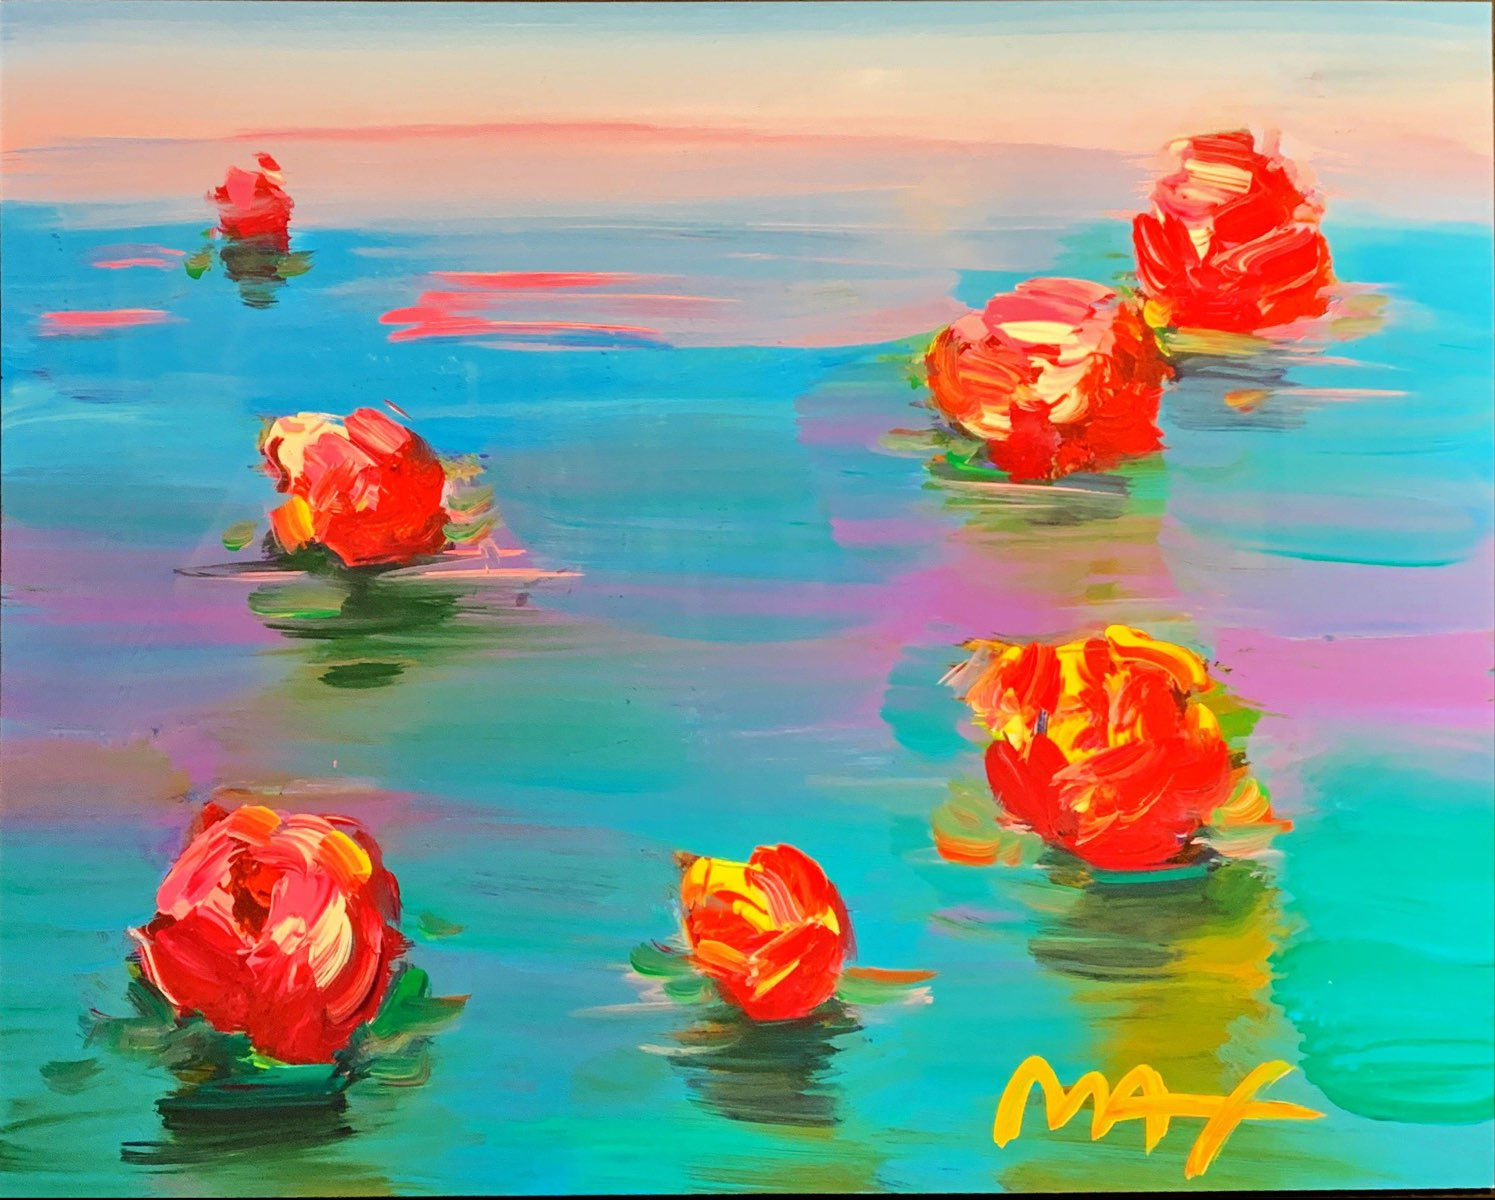 Homage to Monet: Water Lilies